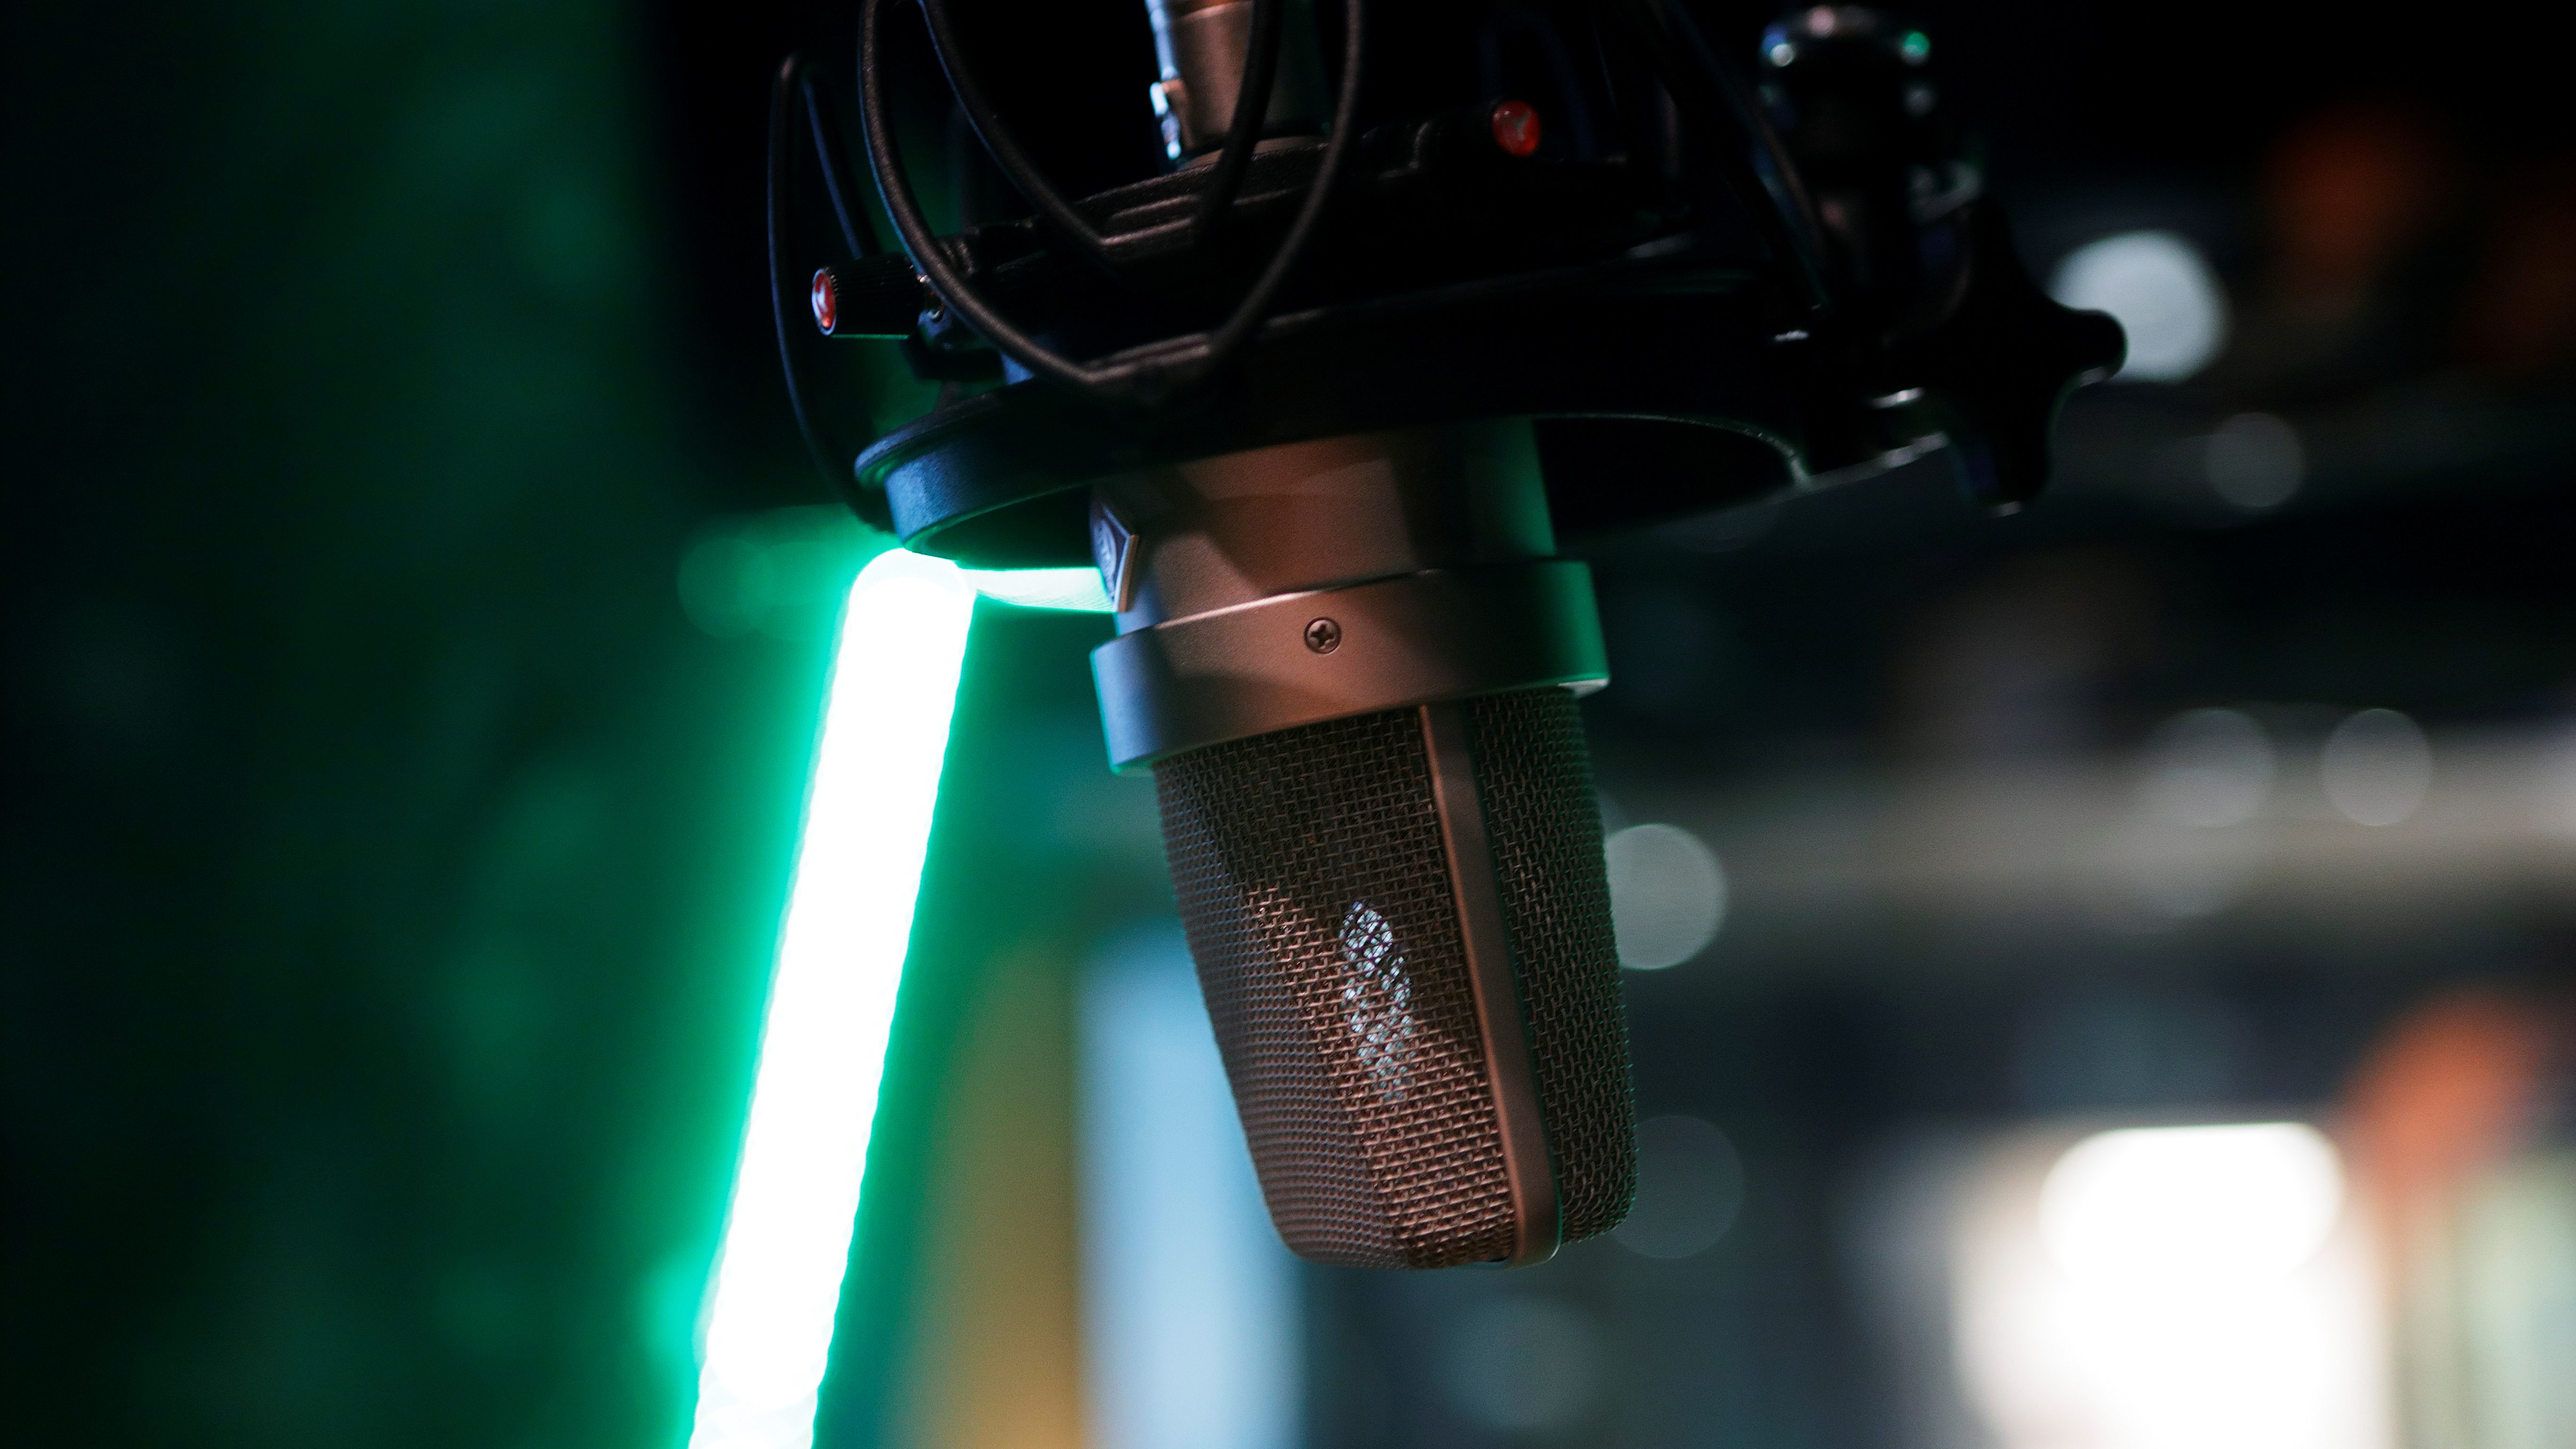 A microphone is seen at a recording studio